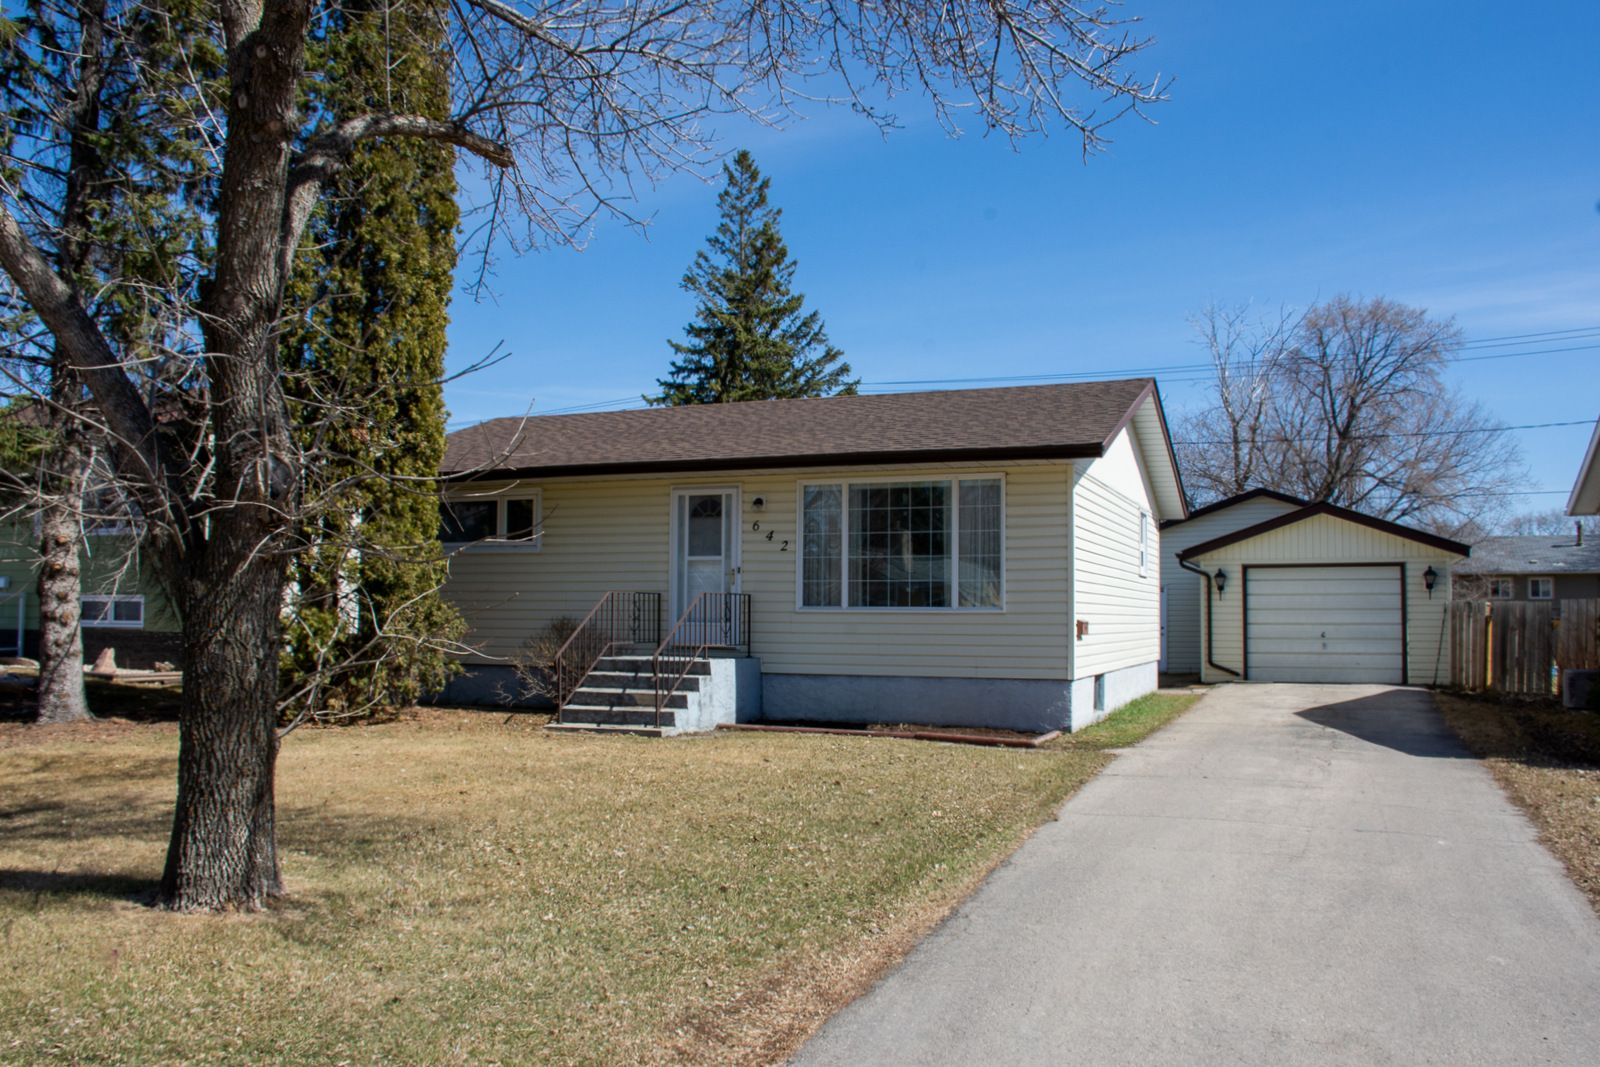 Main Photo: 642 1st Street NW in Portage la Prairie: House for sale : MLS®# 202108191